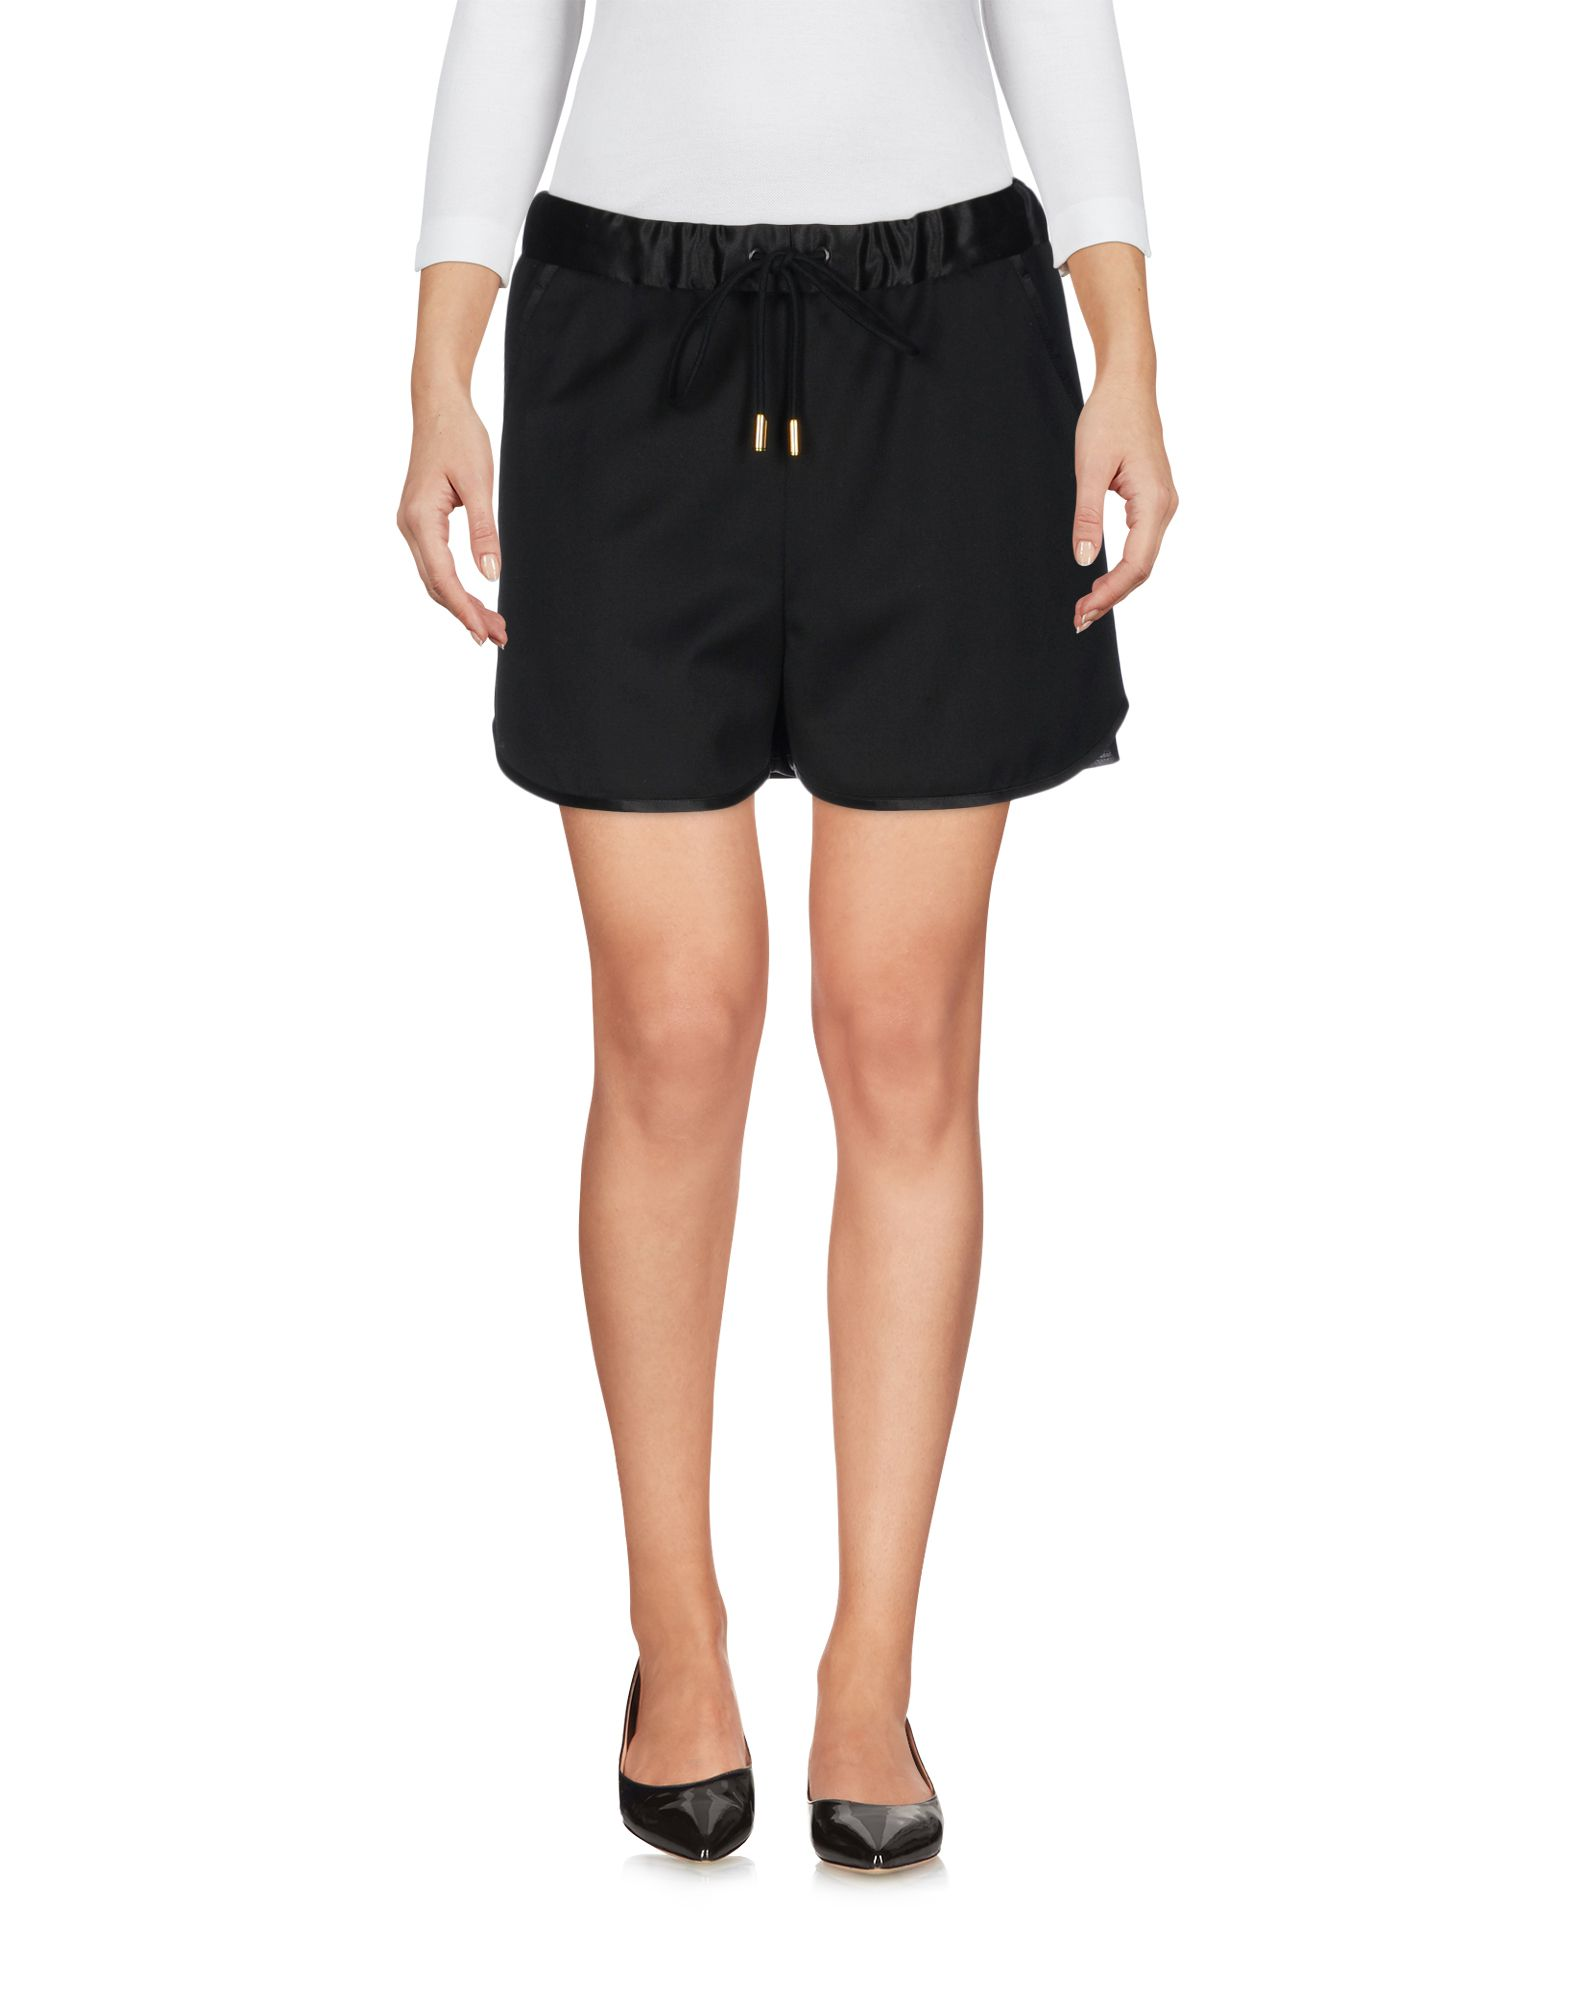 THE RERACS Shorts in Black